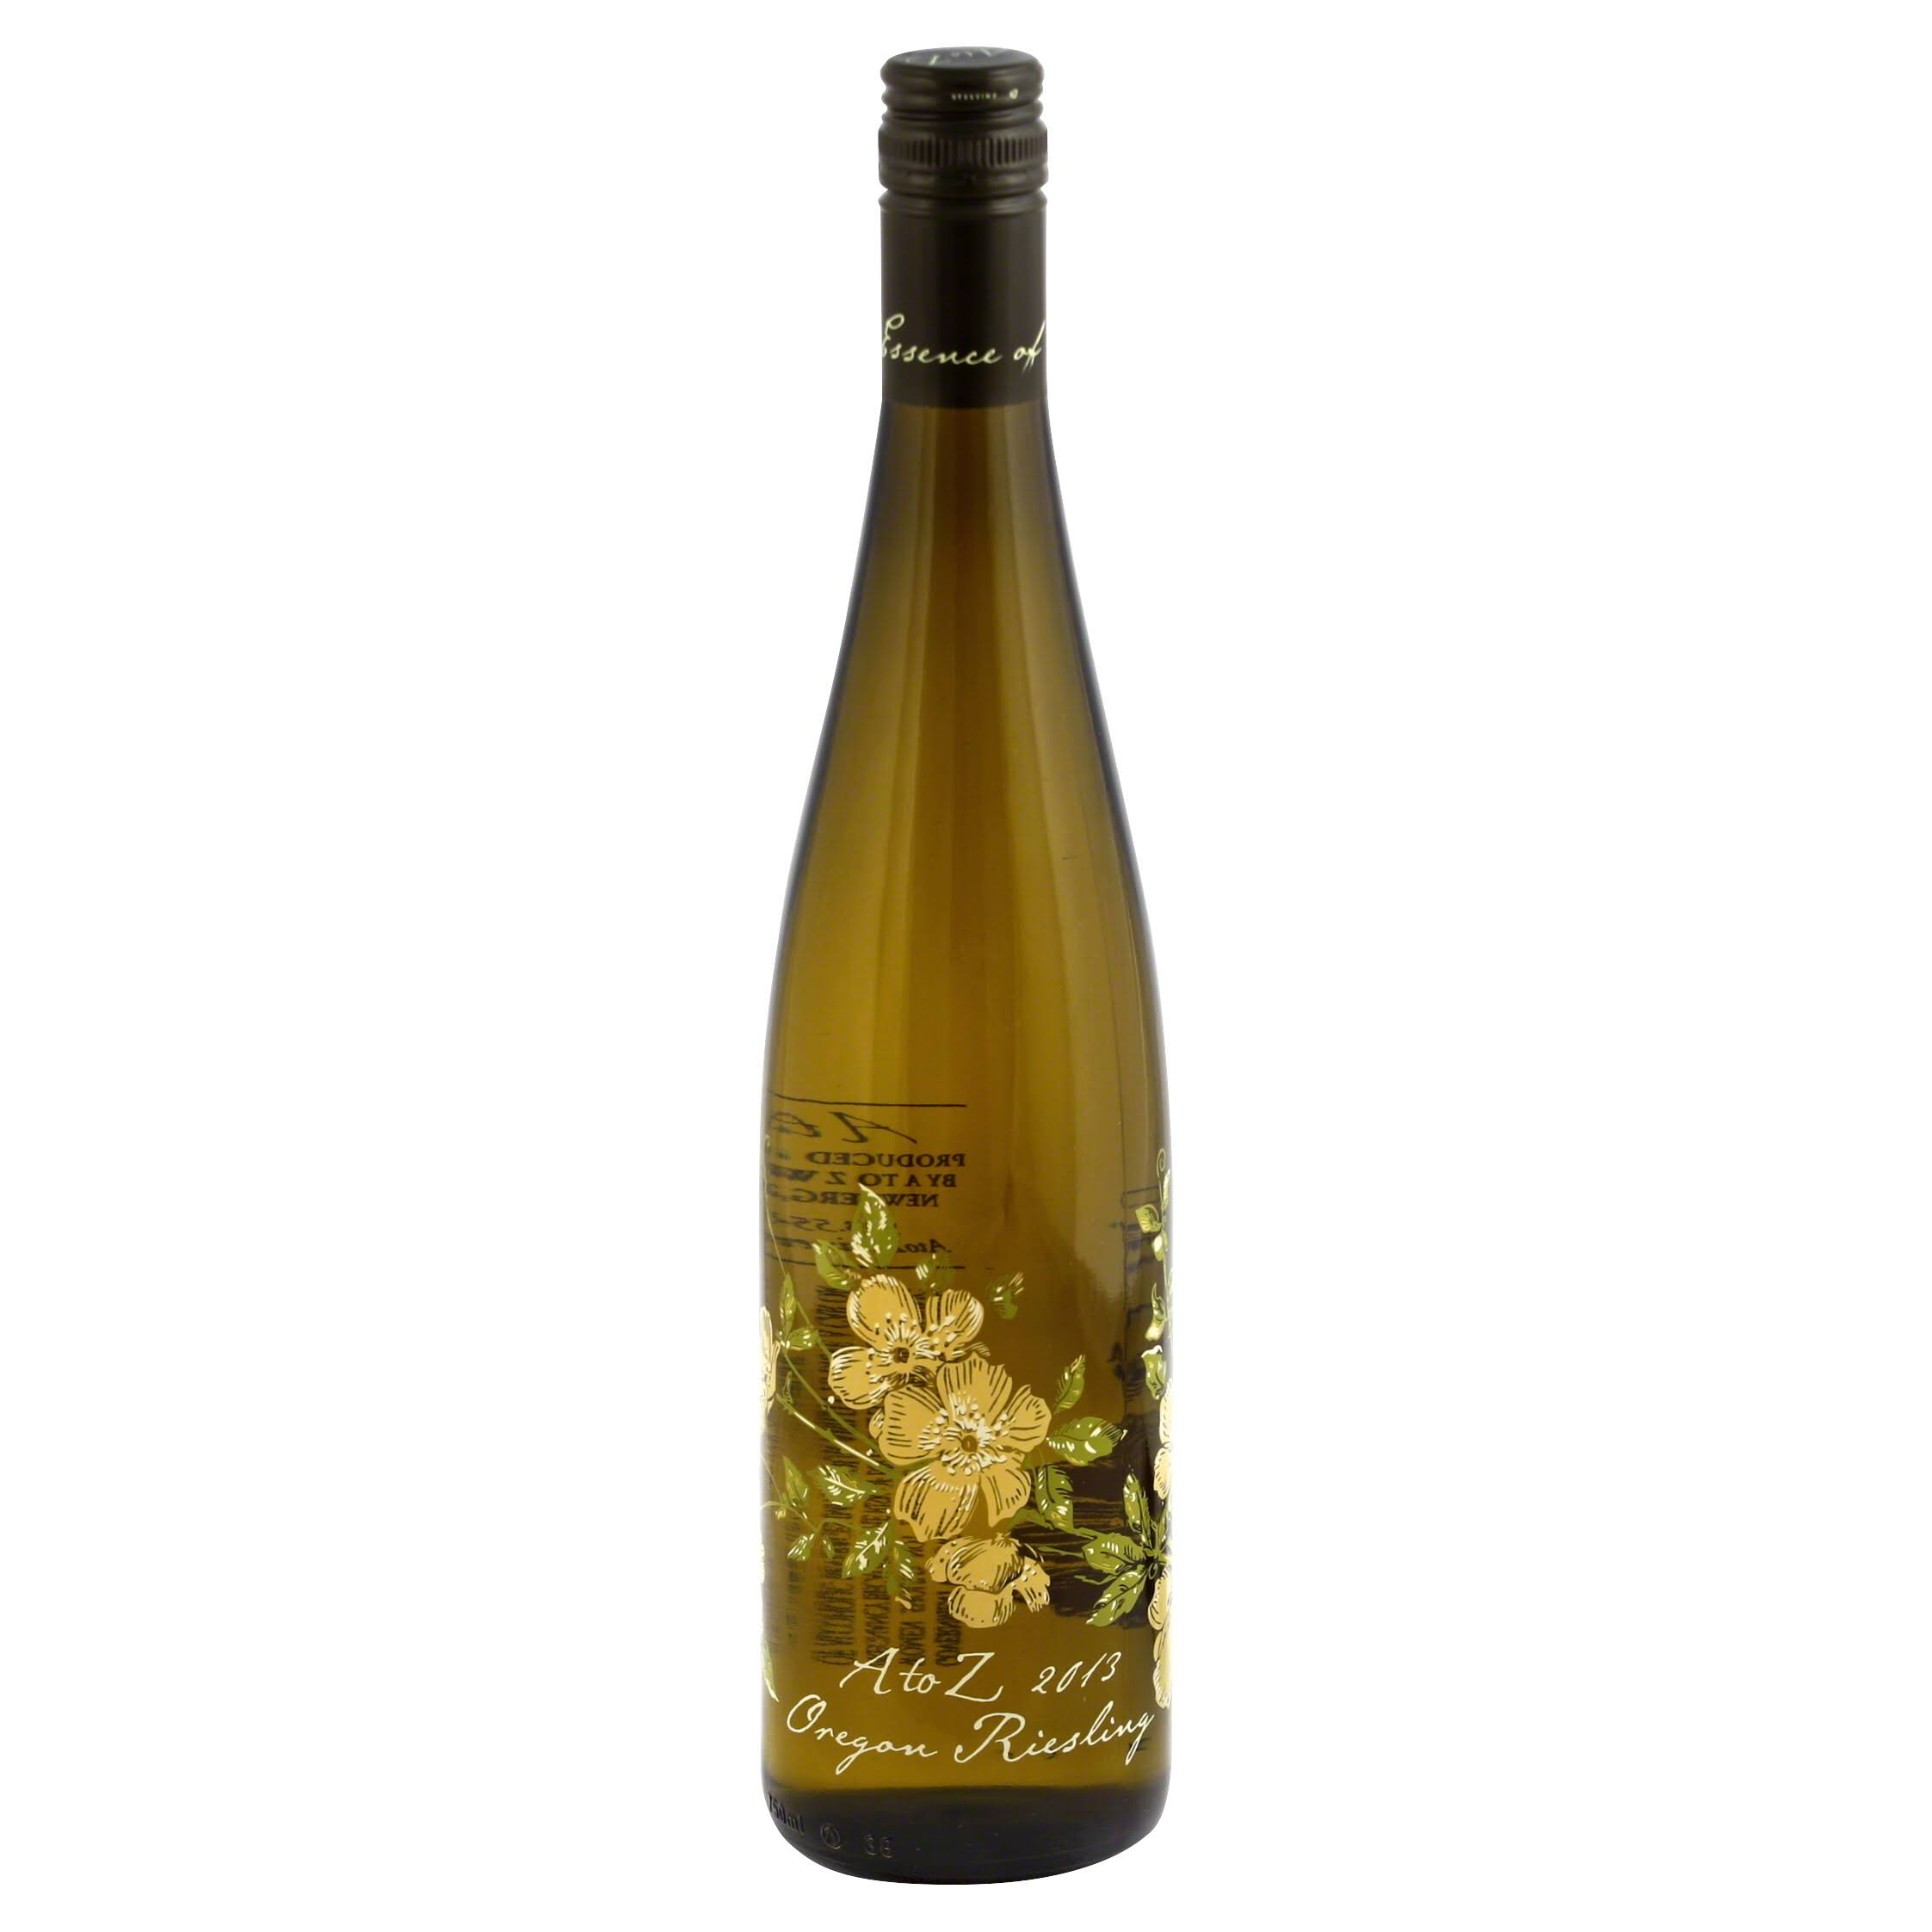 A to Z Riesling, Oregon, 2013 - 750 ml